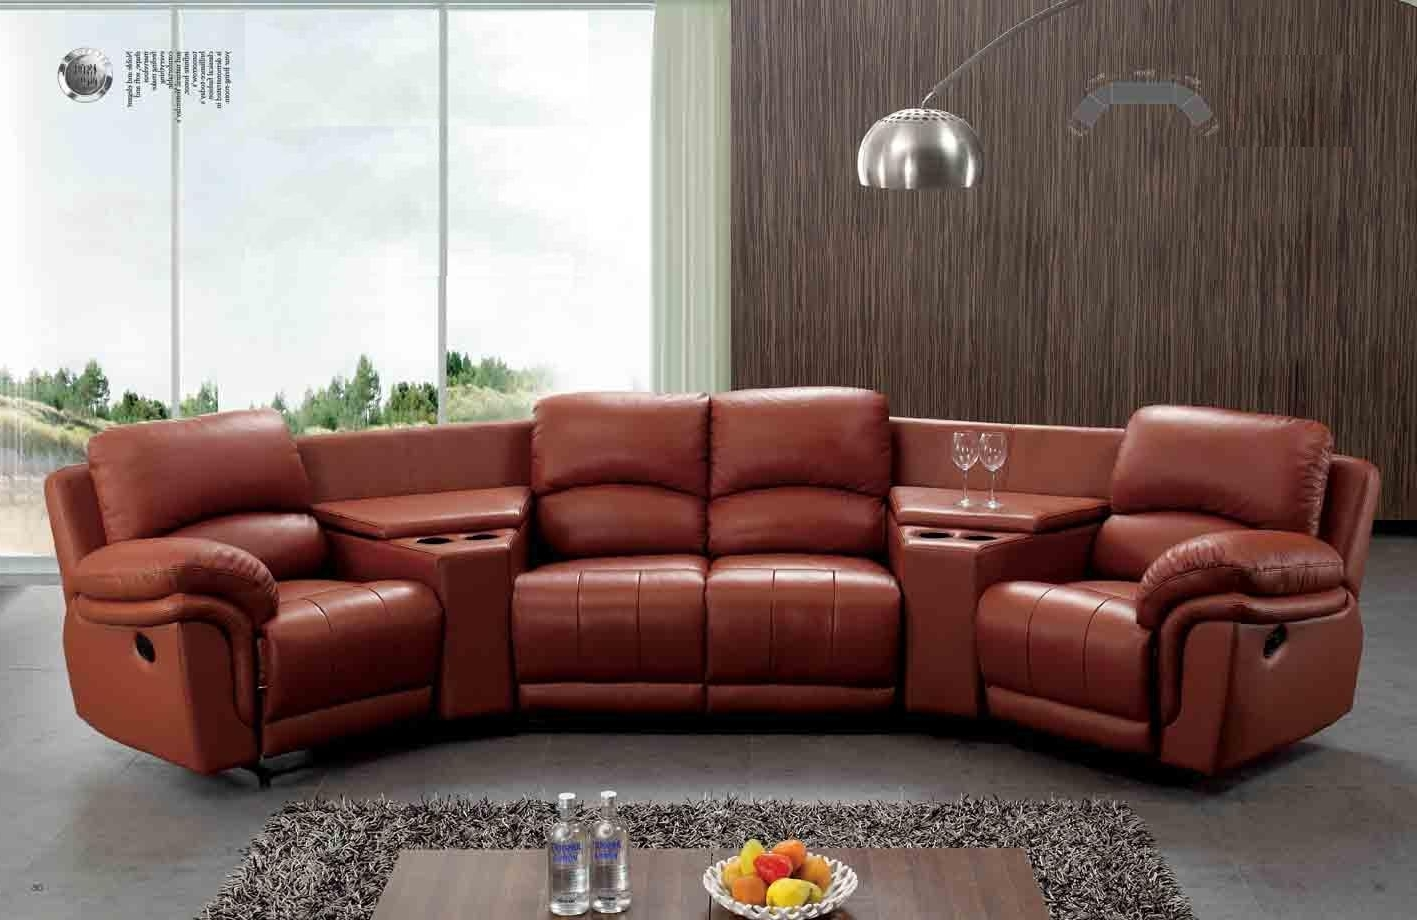 Famous Recliner Sofas Pertaining To Recliner Sofas 4U (View 5 of 17)